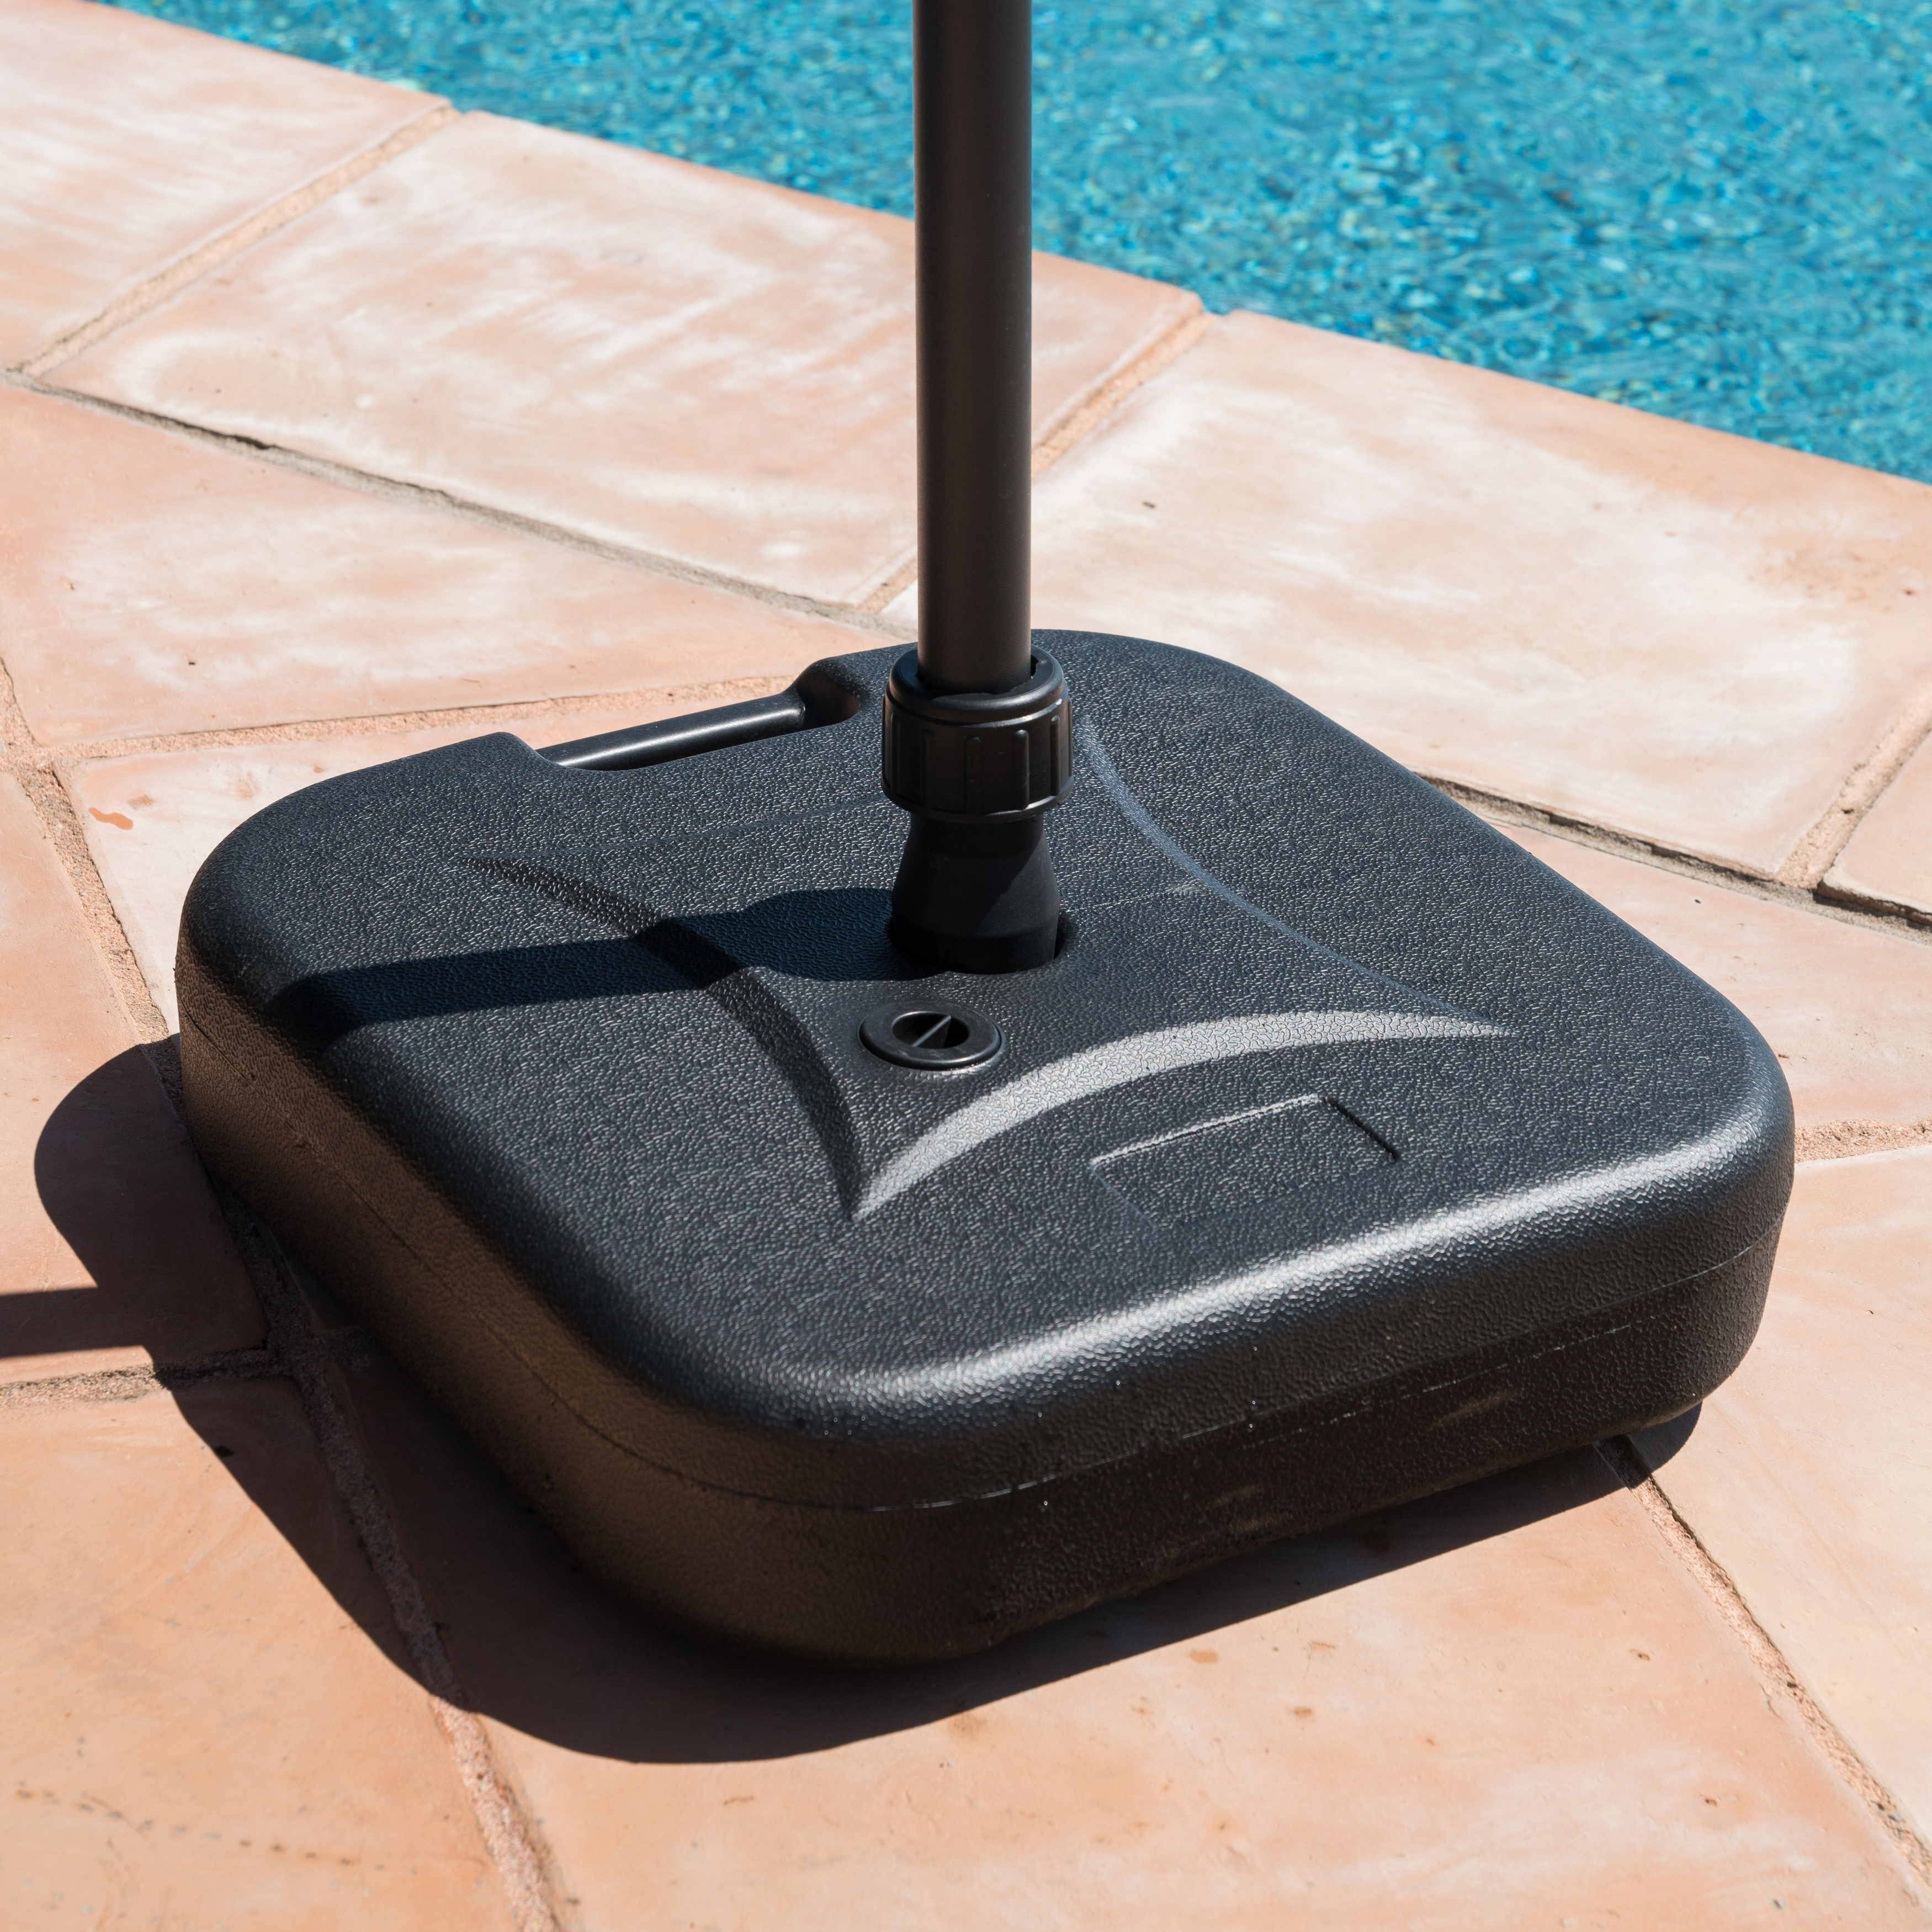 Well Known Patio Umbrella Stands With Wheels Inside Shop Corvus Napa Patio Umbrella Base With Sand Filling Capabilities (View 19 of 20)